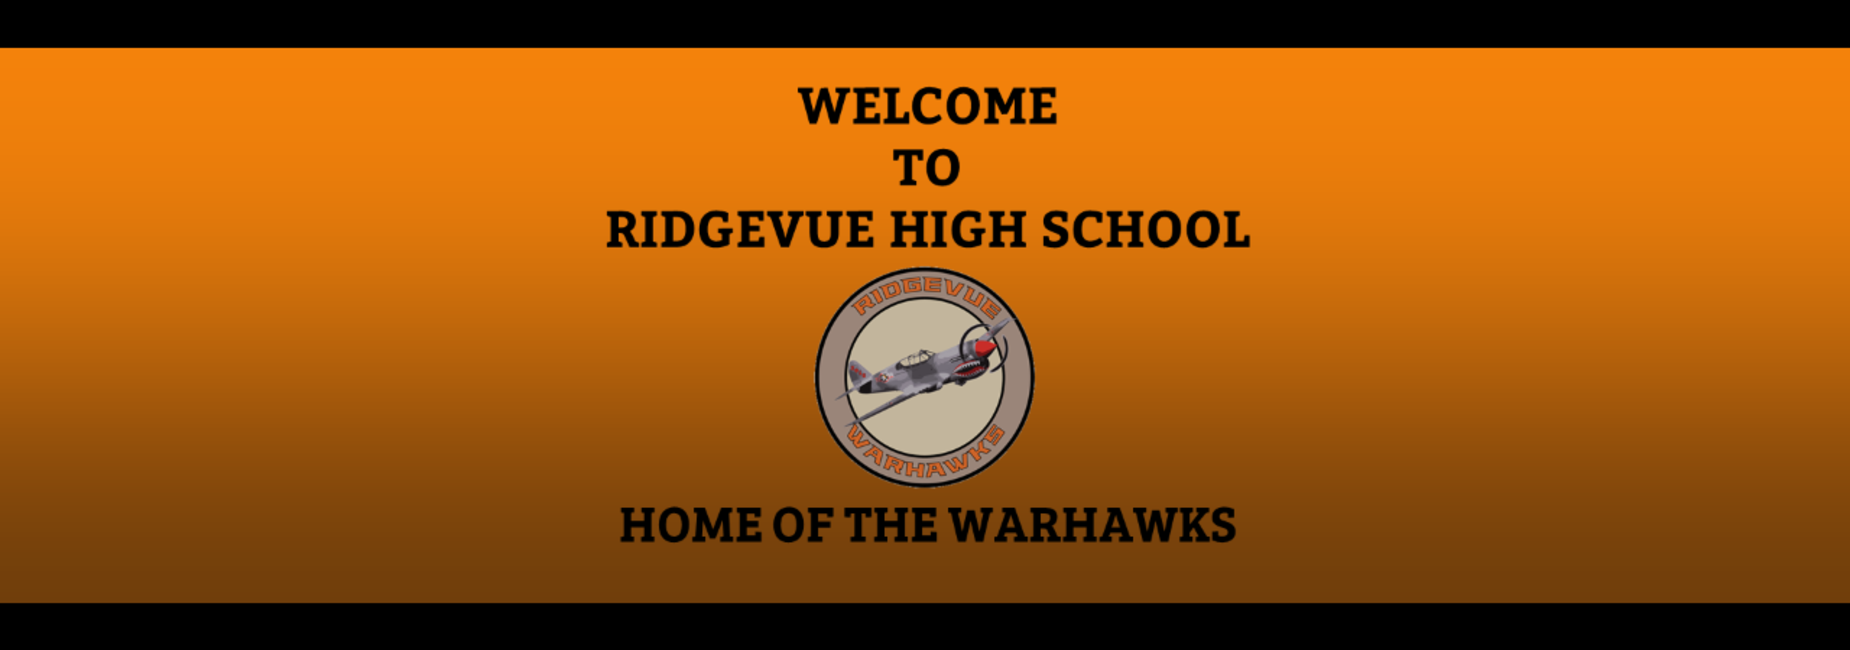 RHS Title page